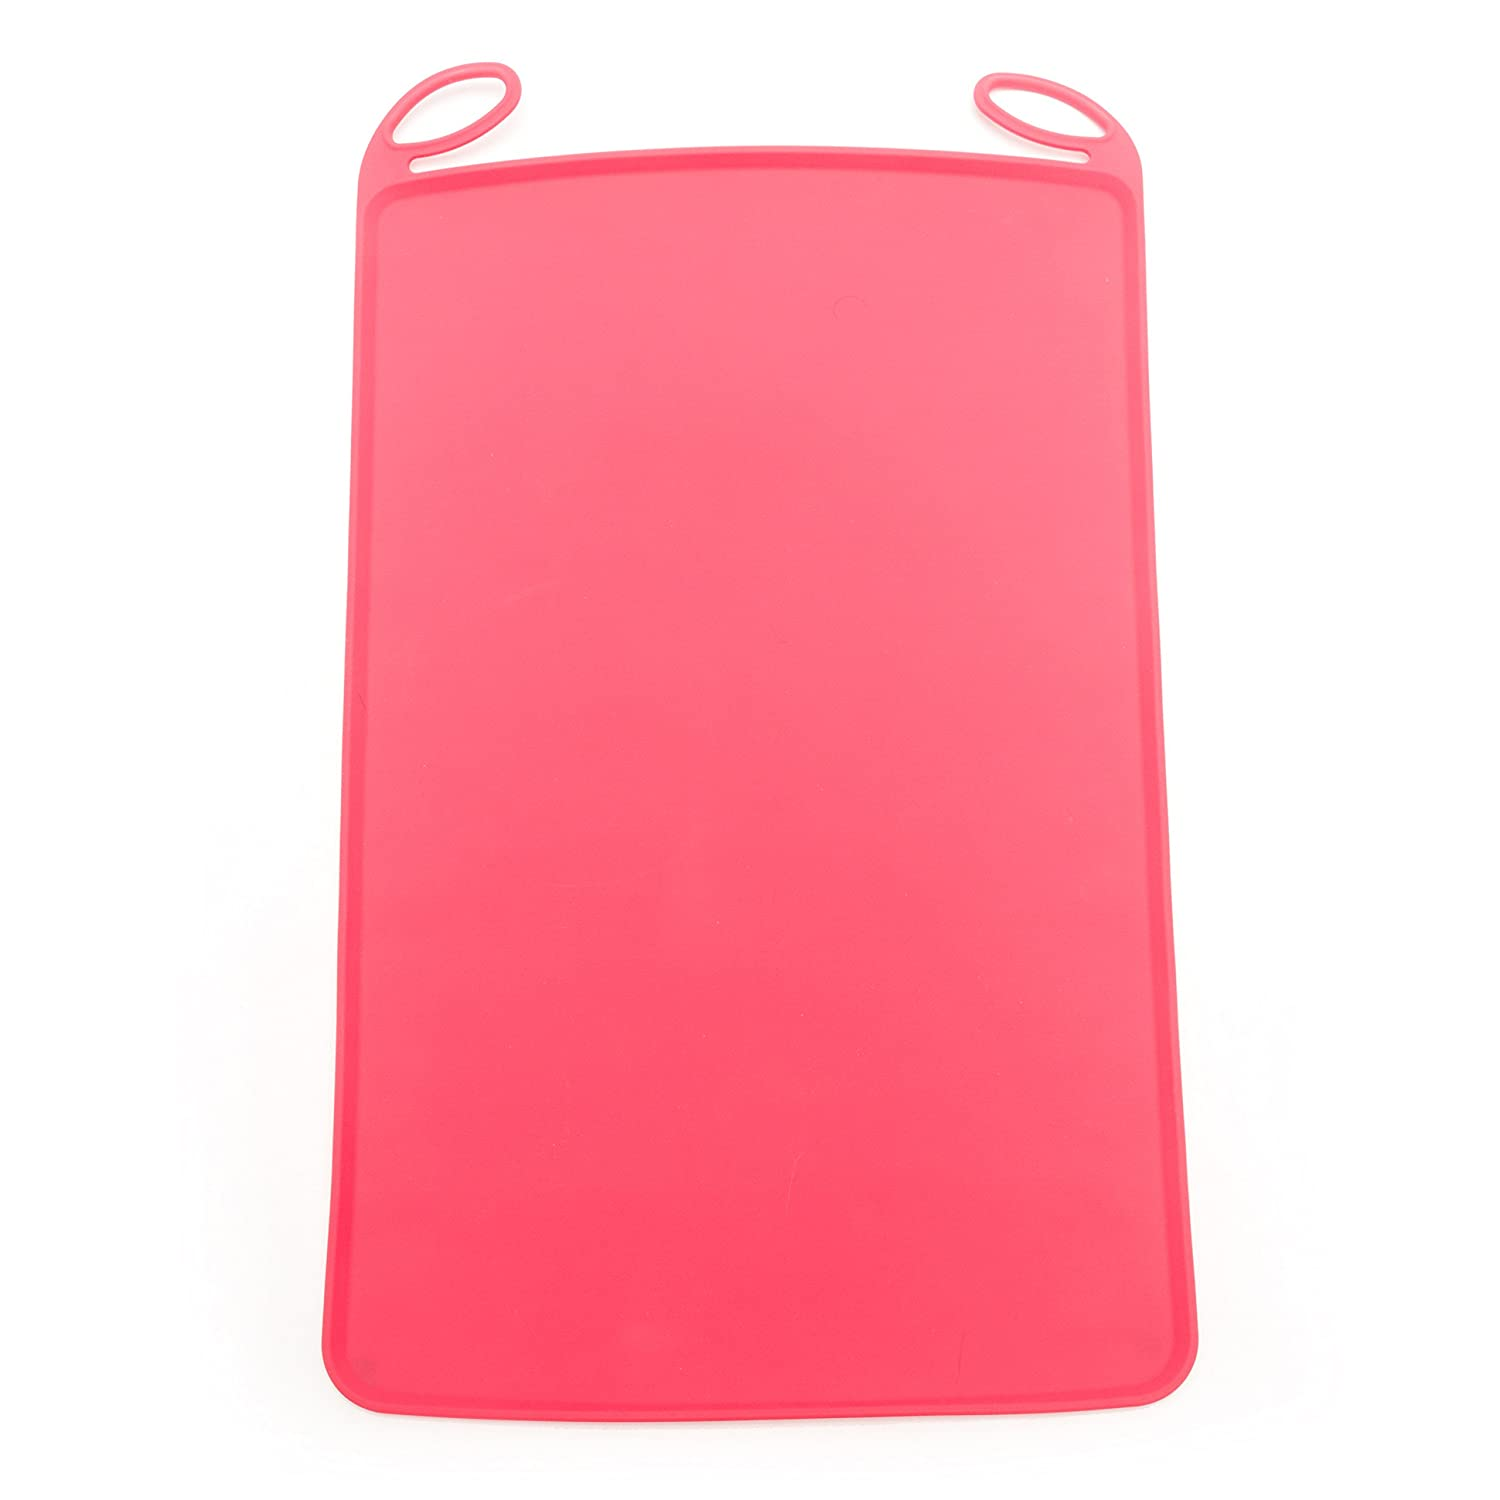 Messy Mutts Portable Silicone Mat, 19.7  x 12.6